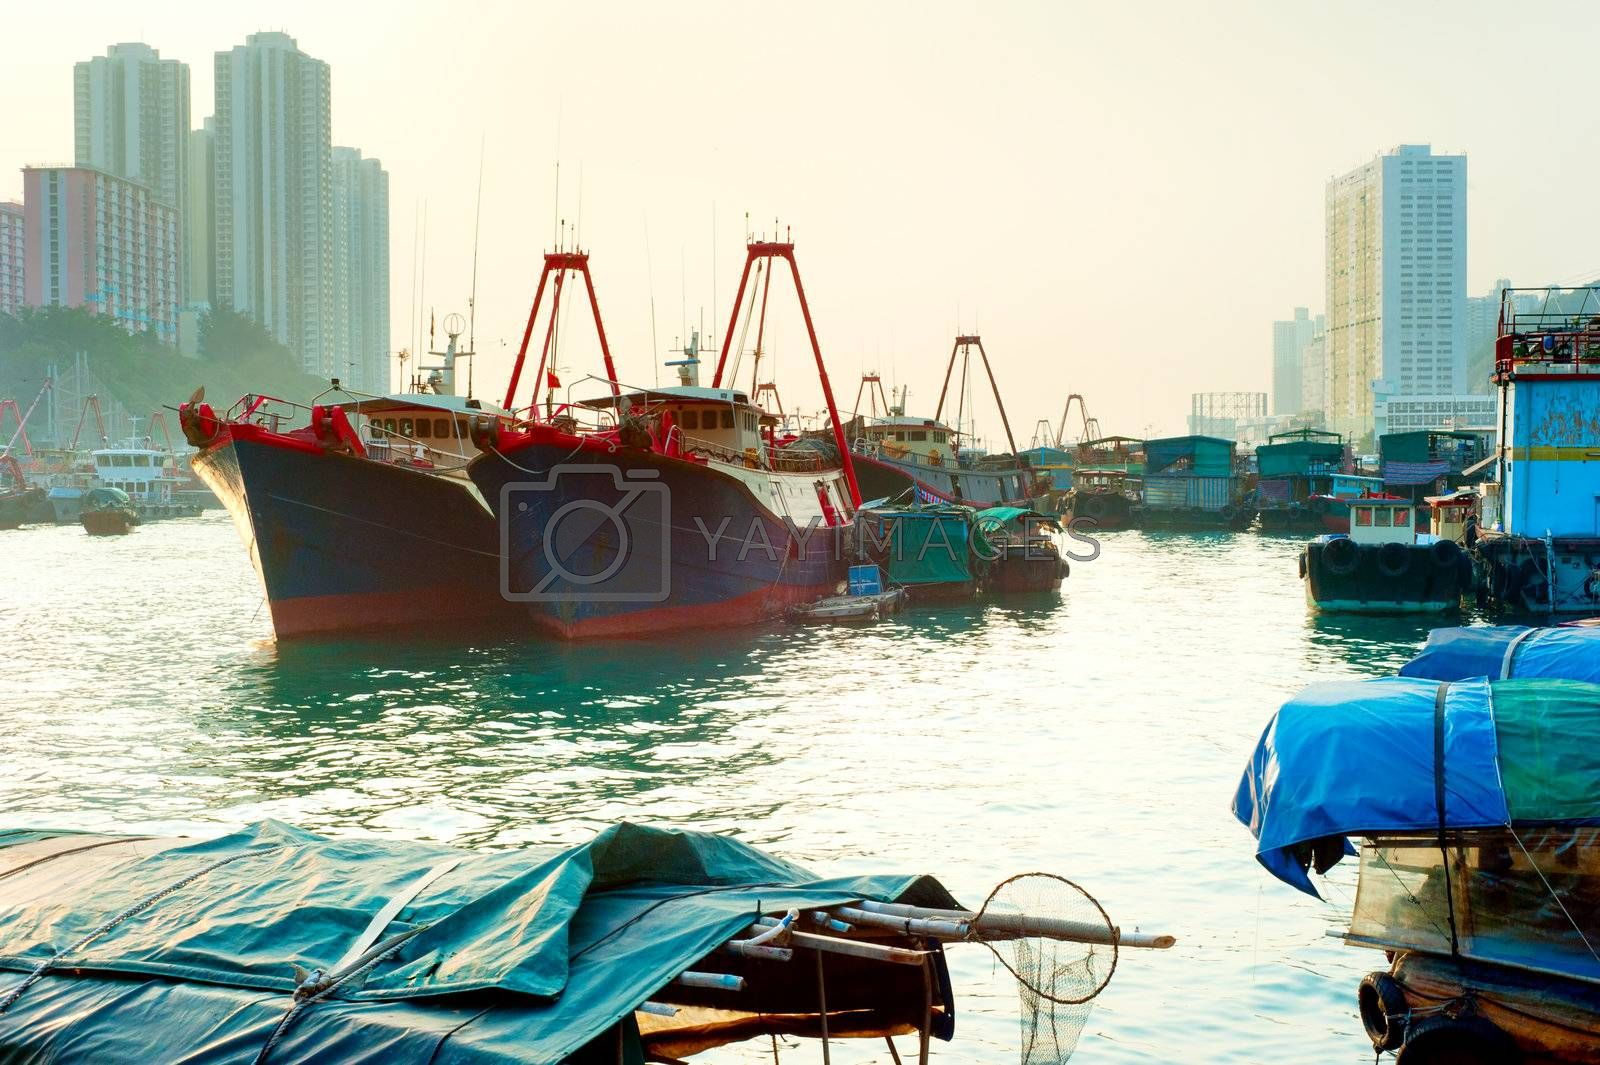 Aberdeen is famous to tourists for its floating village. Hong Kong